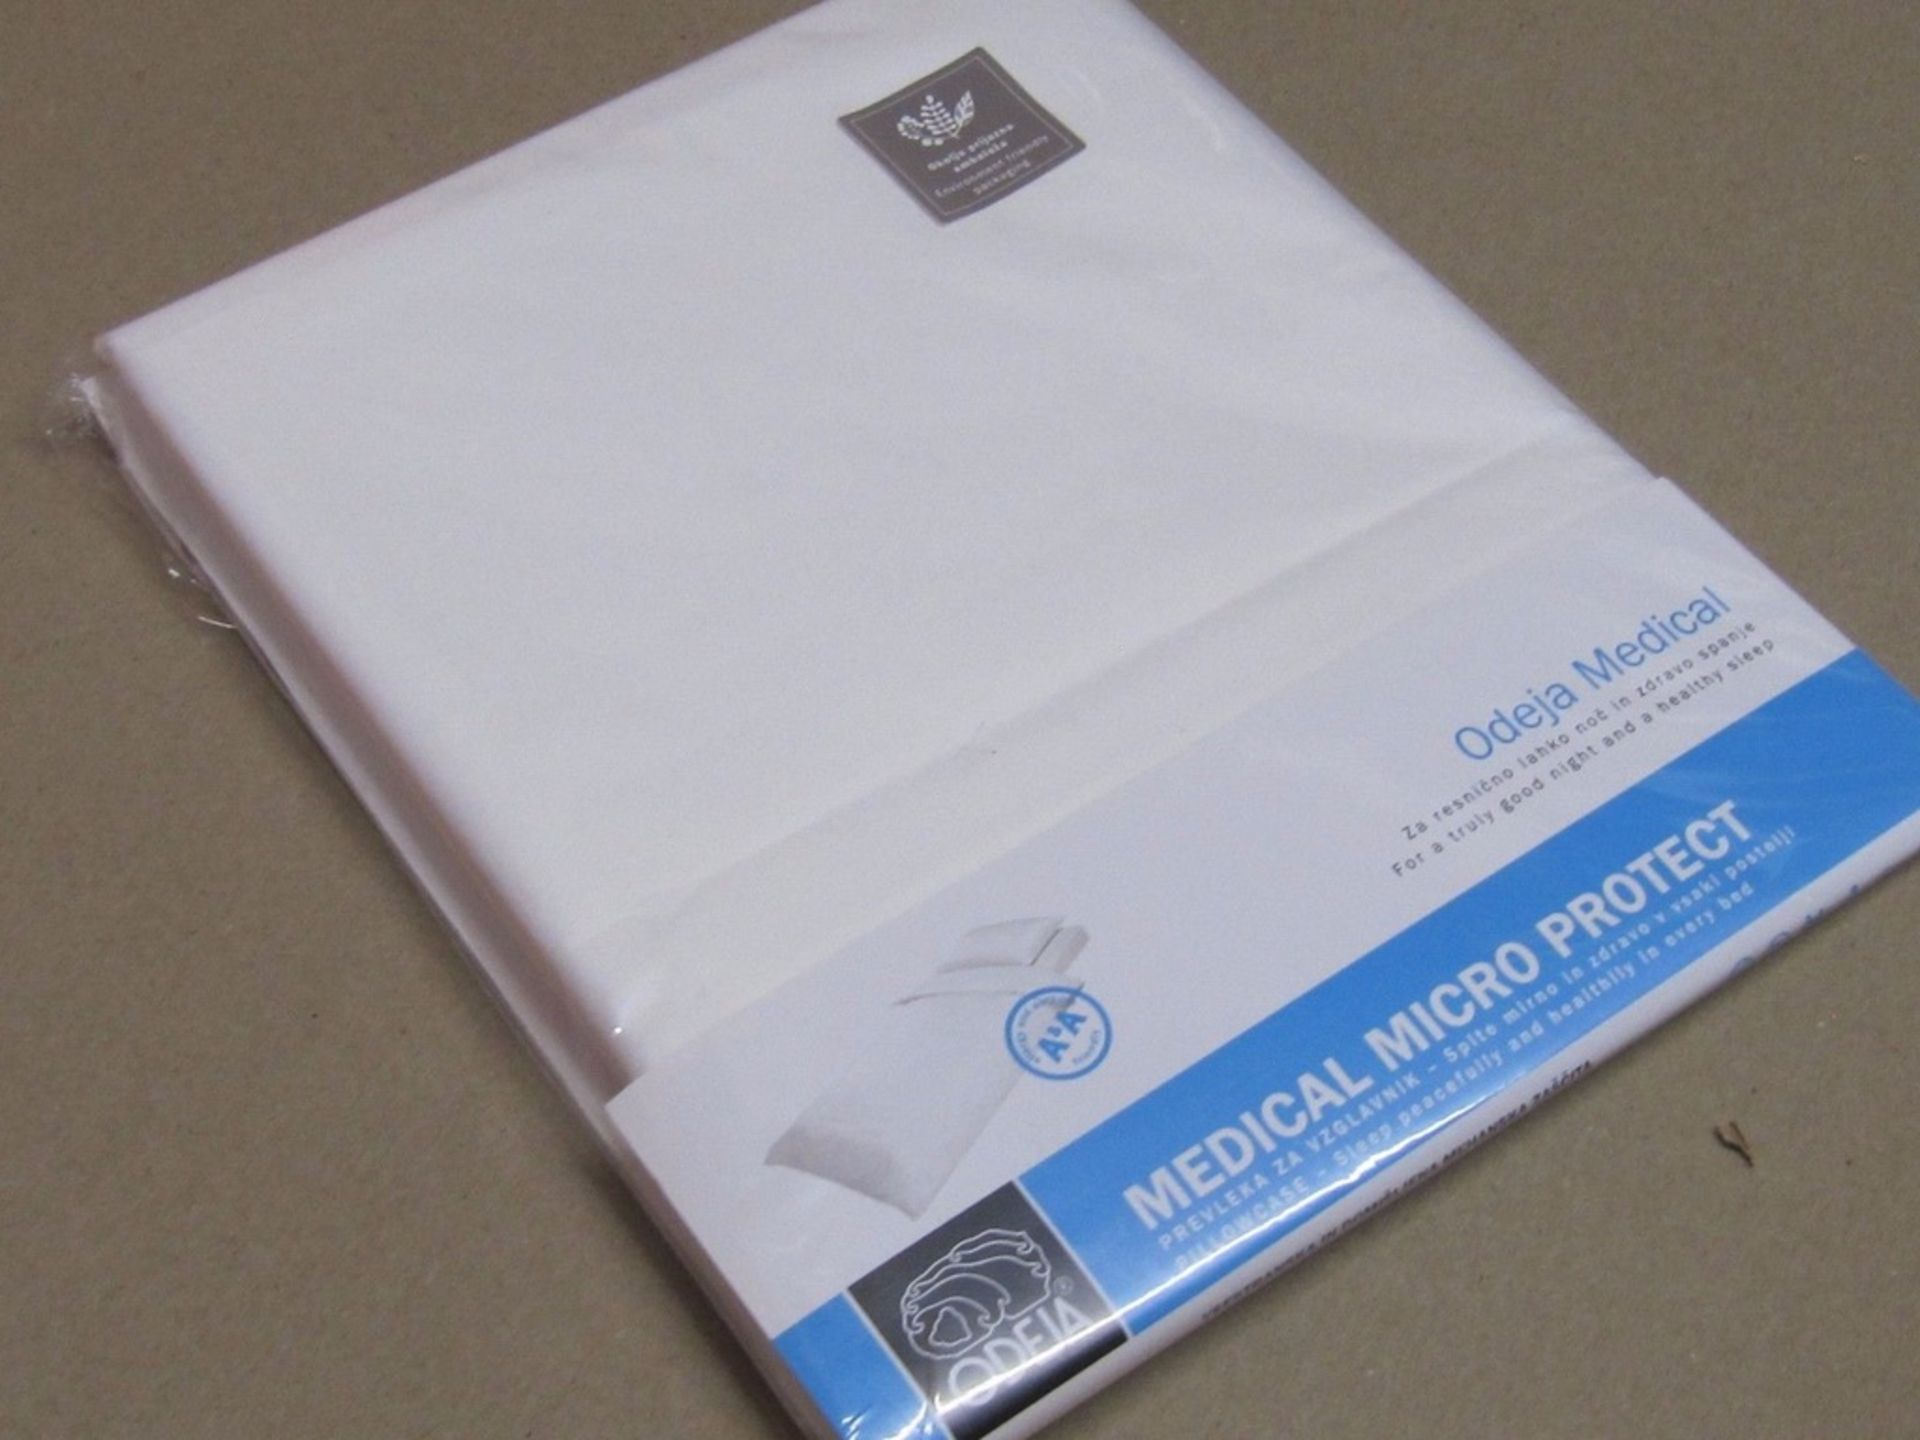 Lot 40 - 5 x Allergies Pillow Case. Medical Micro Protect Cover. by ODEJAno vat on hammer.You will get 5